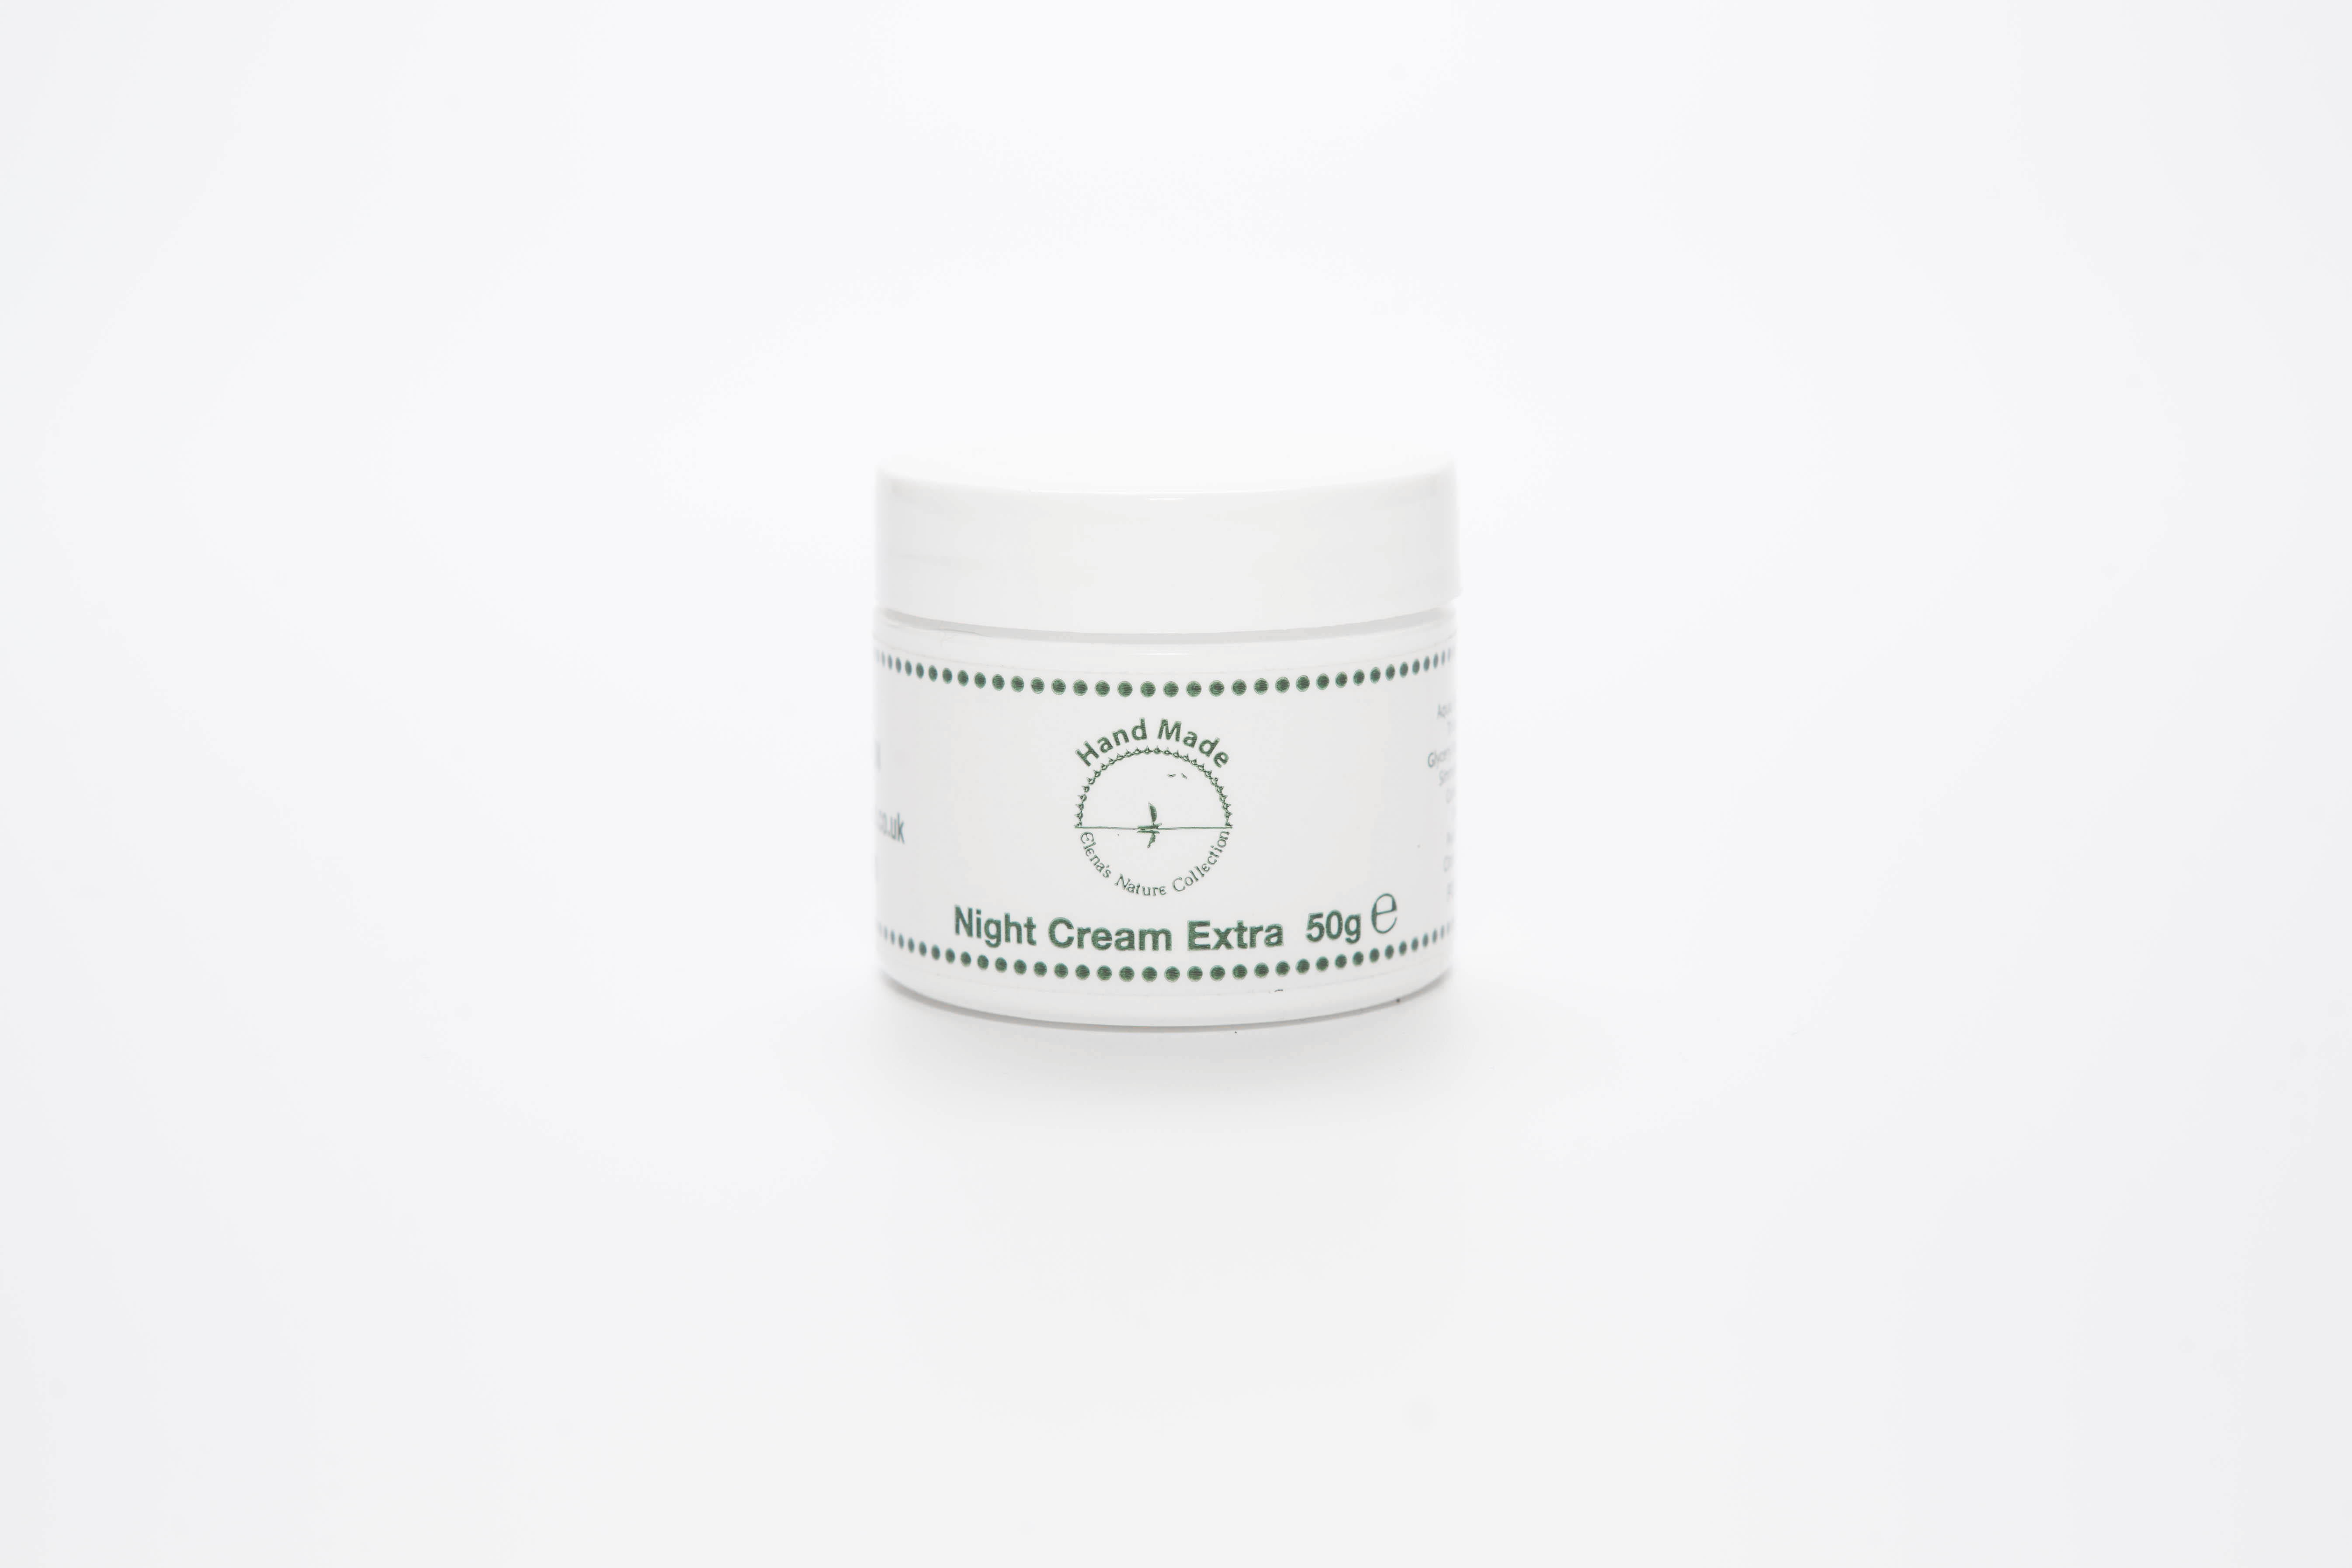 Night Cream Extra 50g 00009